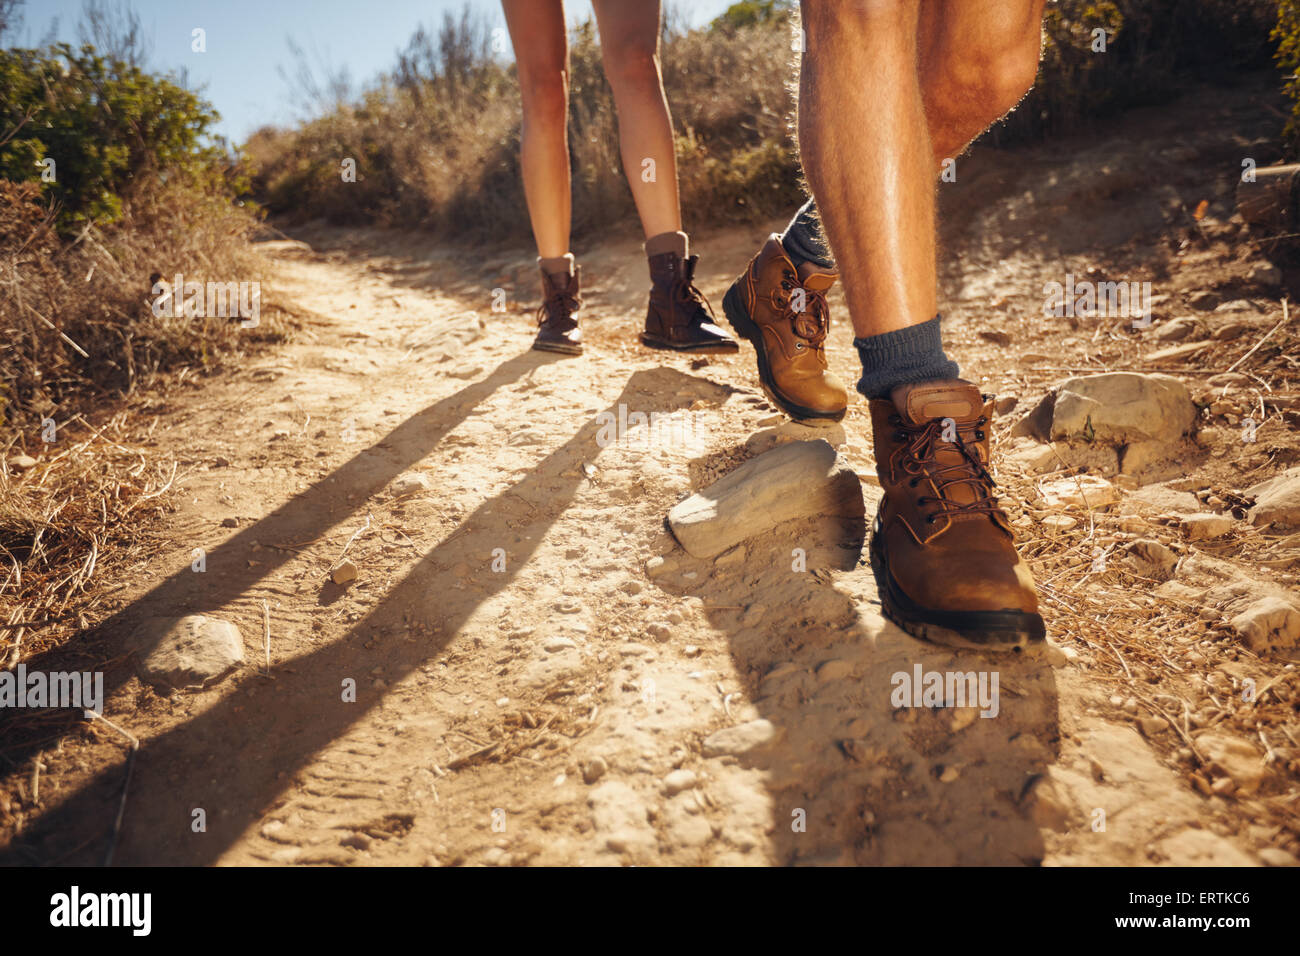 Close-up of legs of young hikers walking on the country path. Young couple trail waking. Focus on hiking shoes. - Stock Image